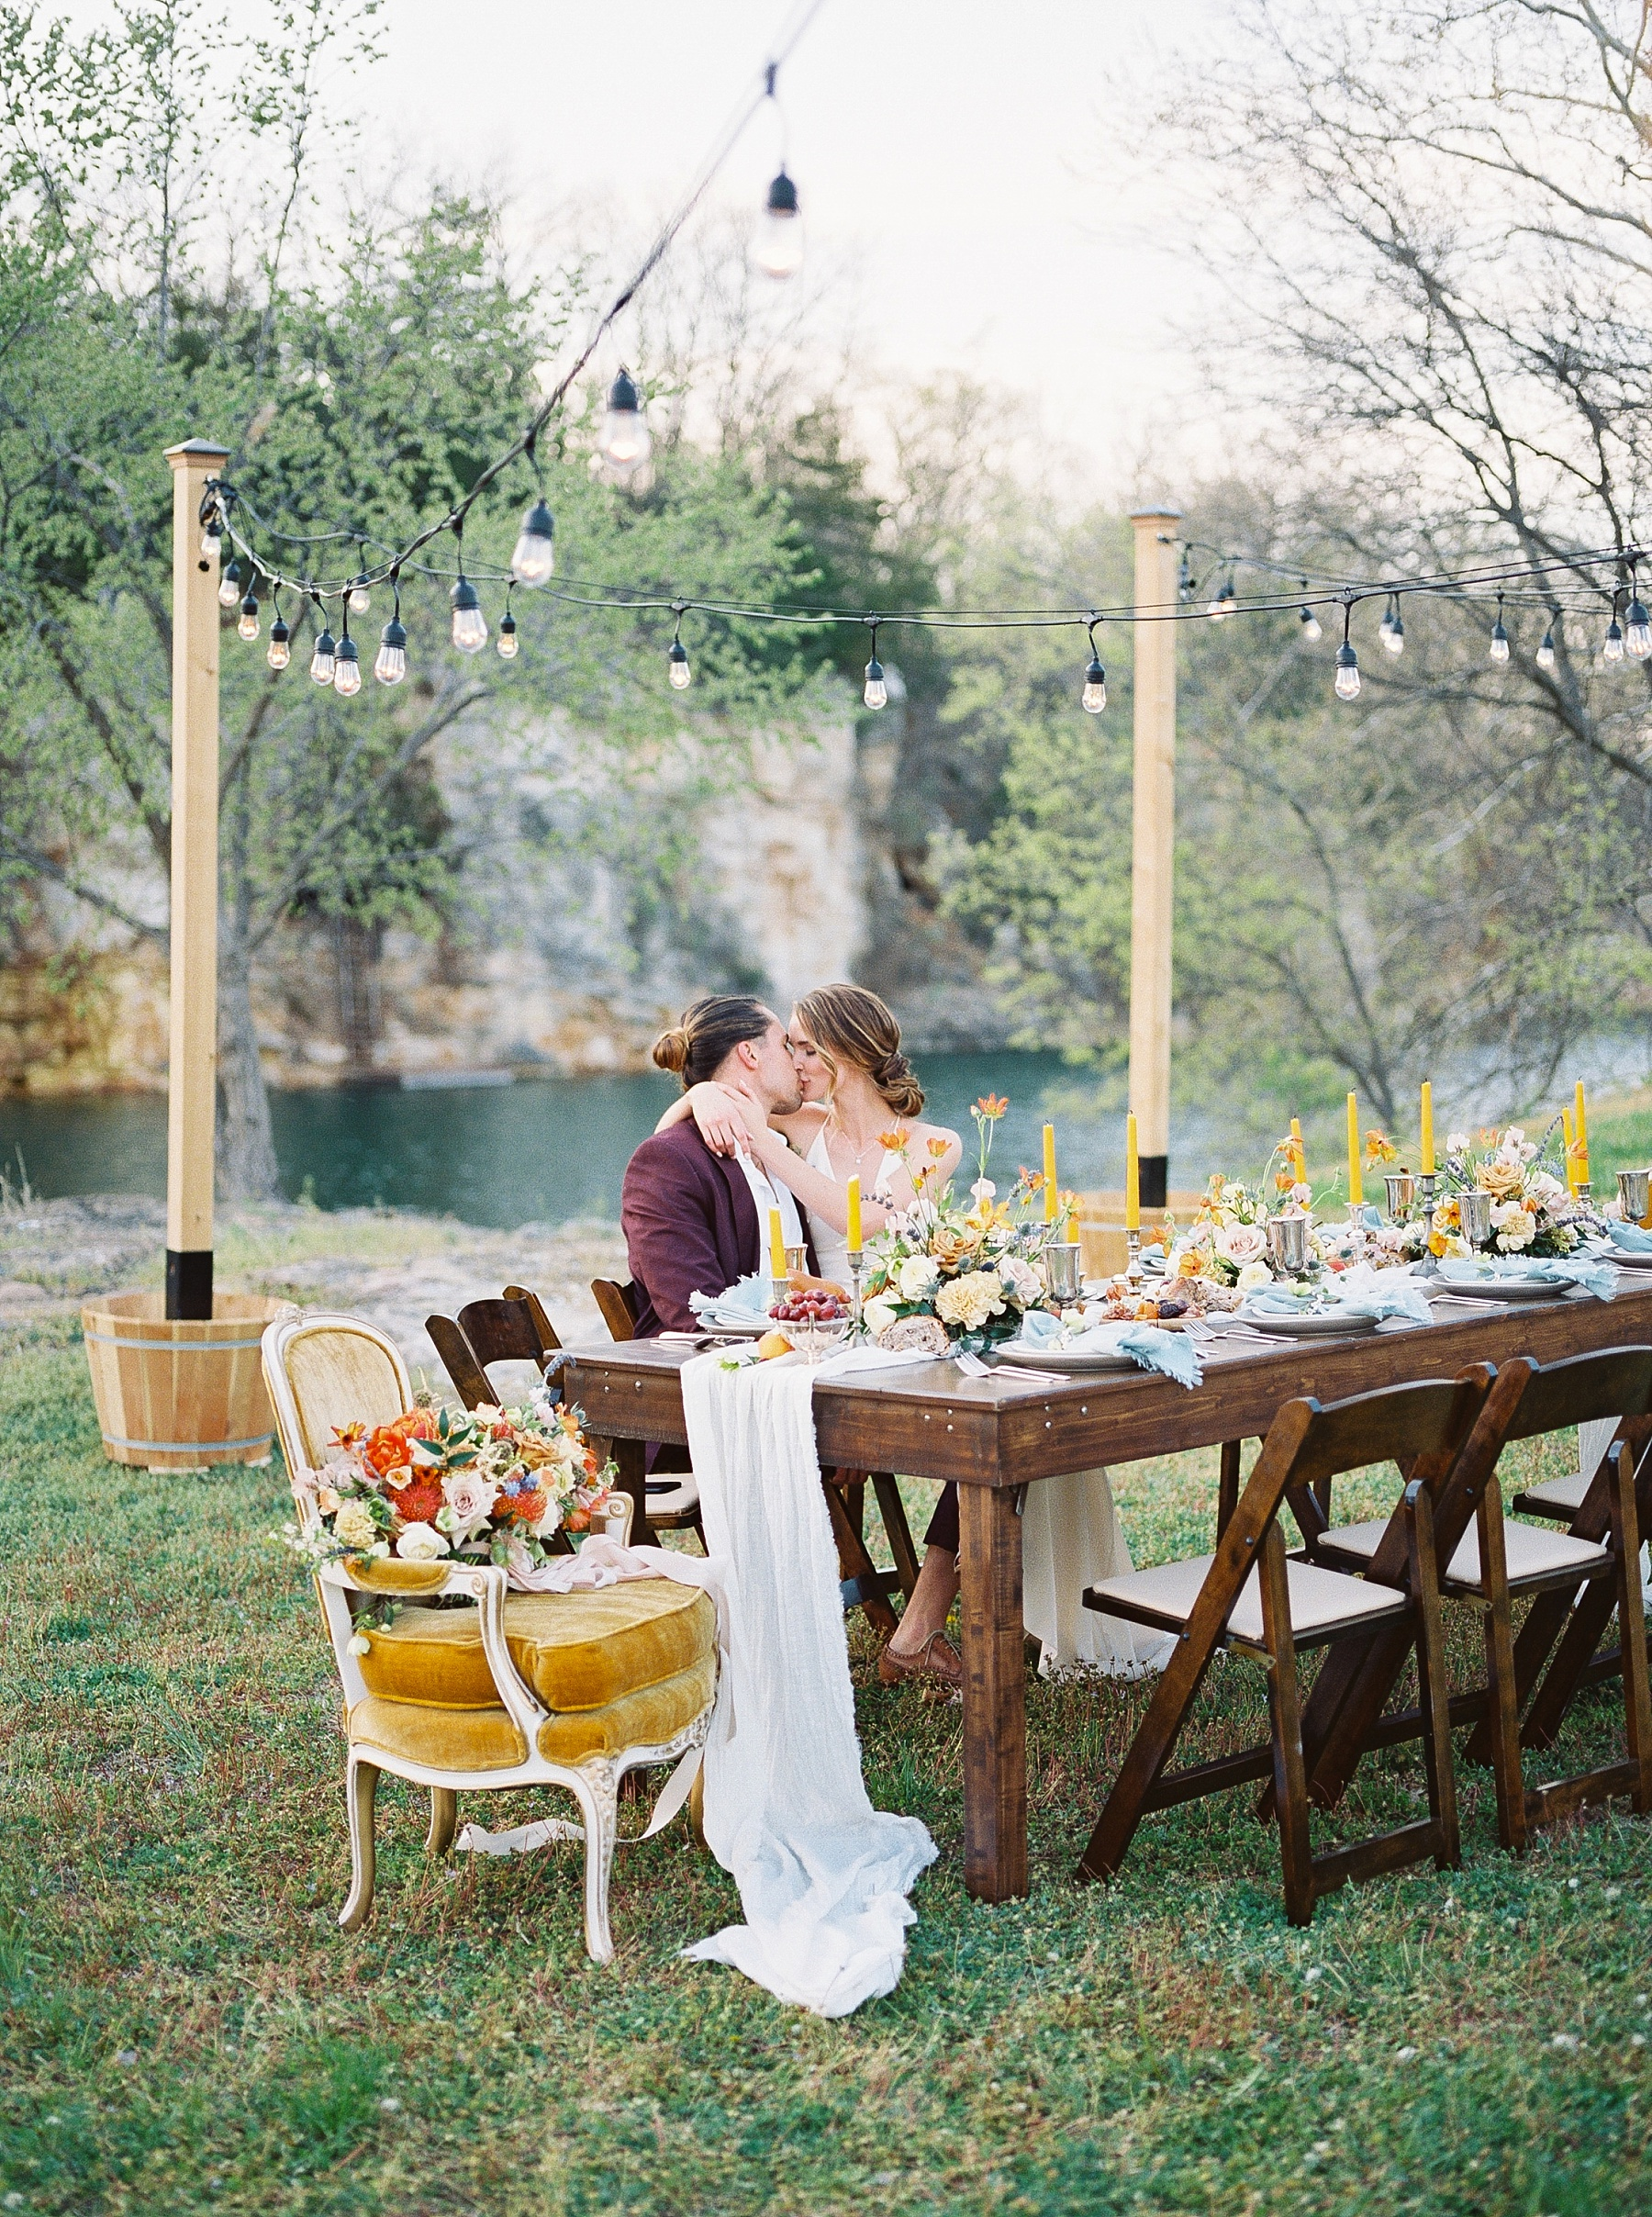 Intimate Spanish and French Inspired Destination Wedding with Lakeside Dinner Party at Dusk at Wildcliff by Kelsi Kliethermes Photography Best Missouri and Maui Wedding Photographer_0082.jpg